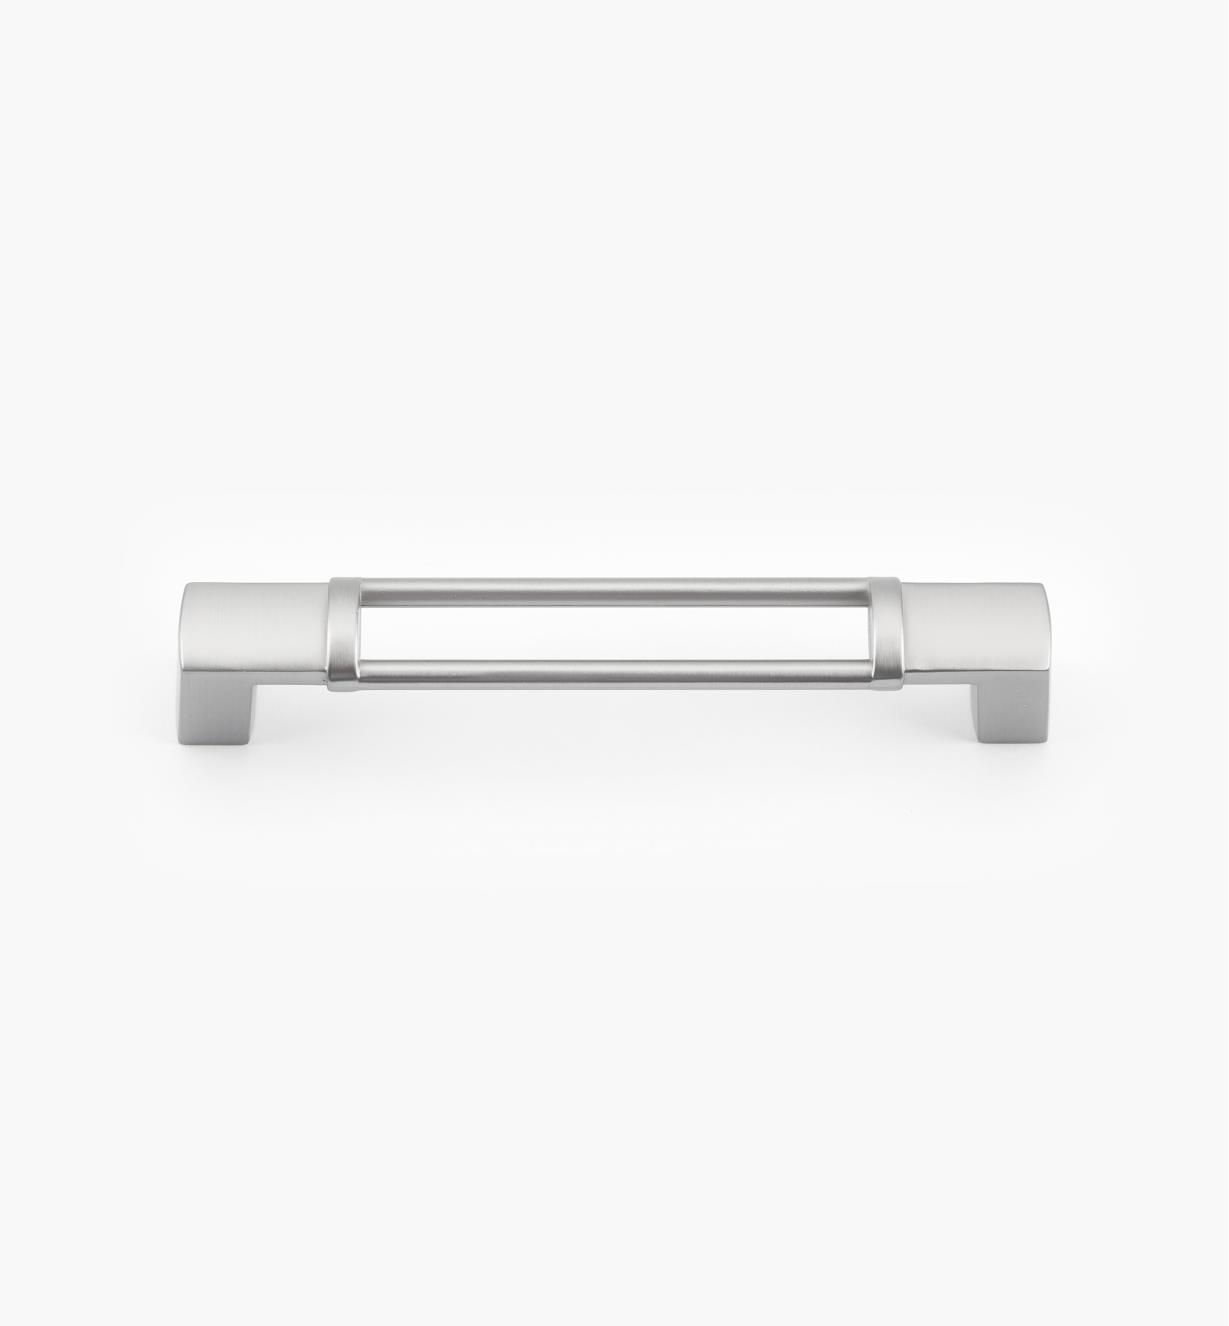 01W4431 - Monarch Satin Nickel Handle